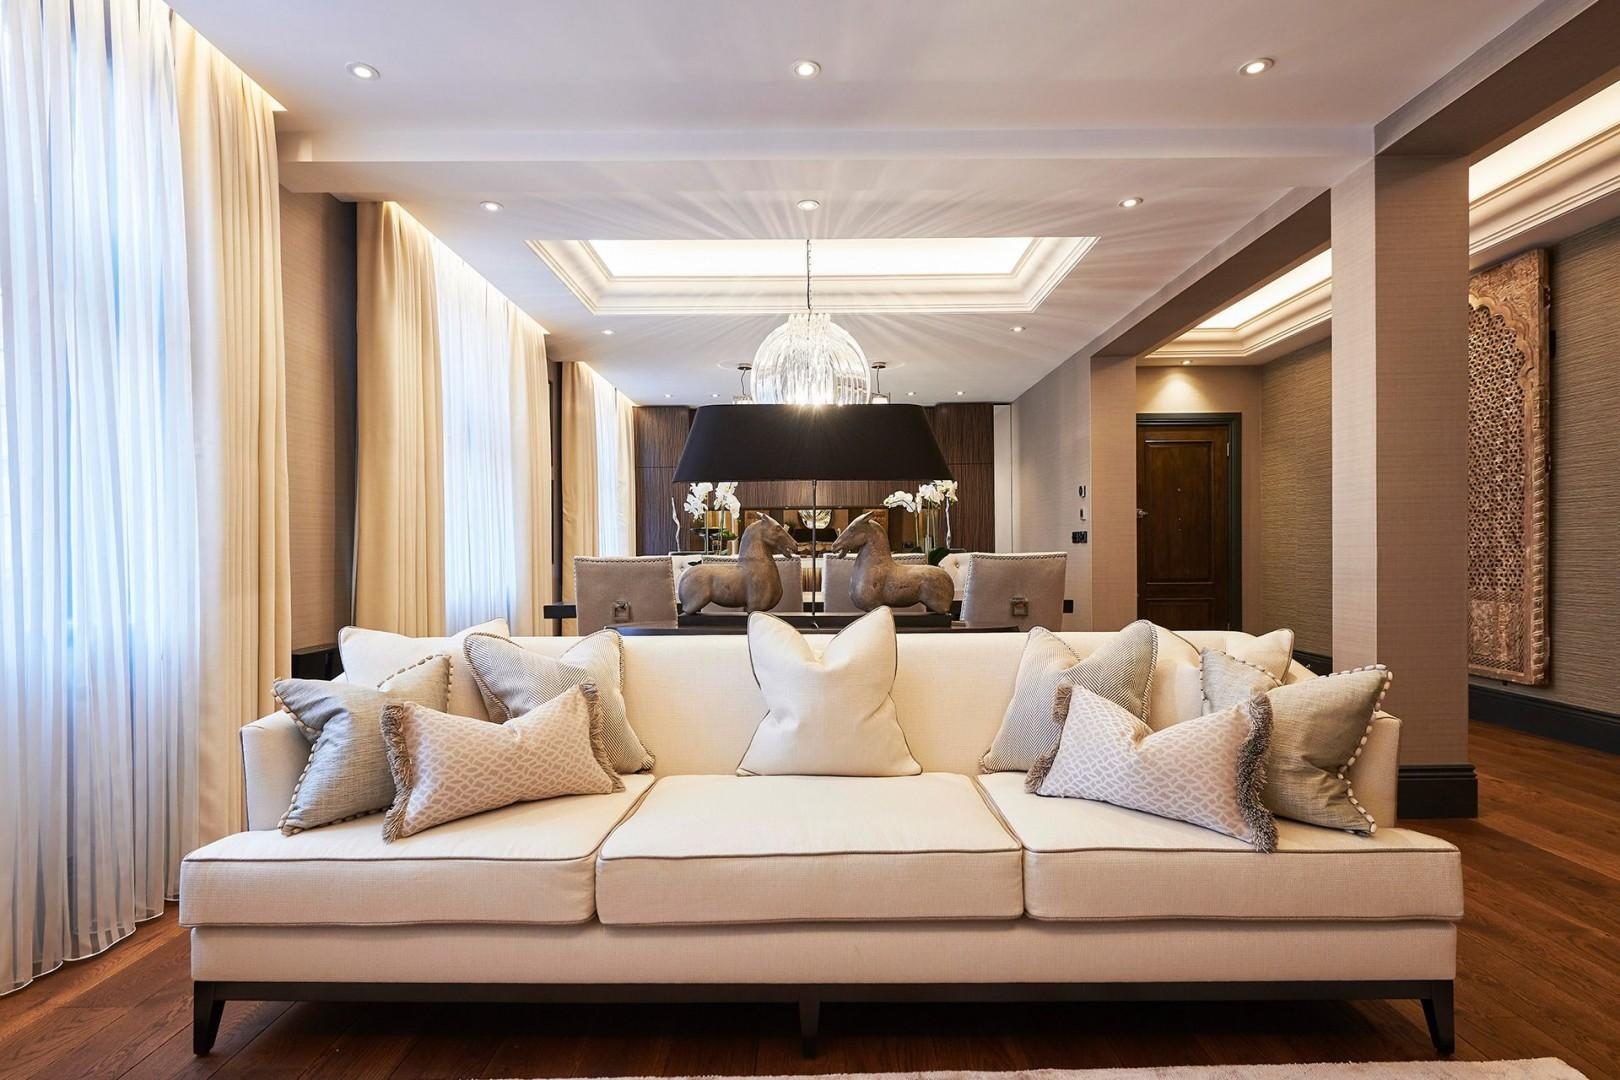 Soft furnishings and soothing warm tones